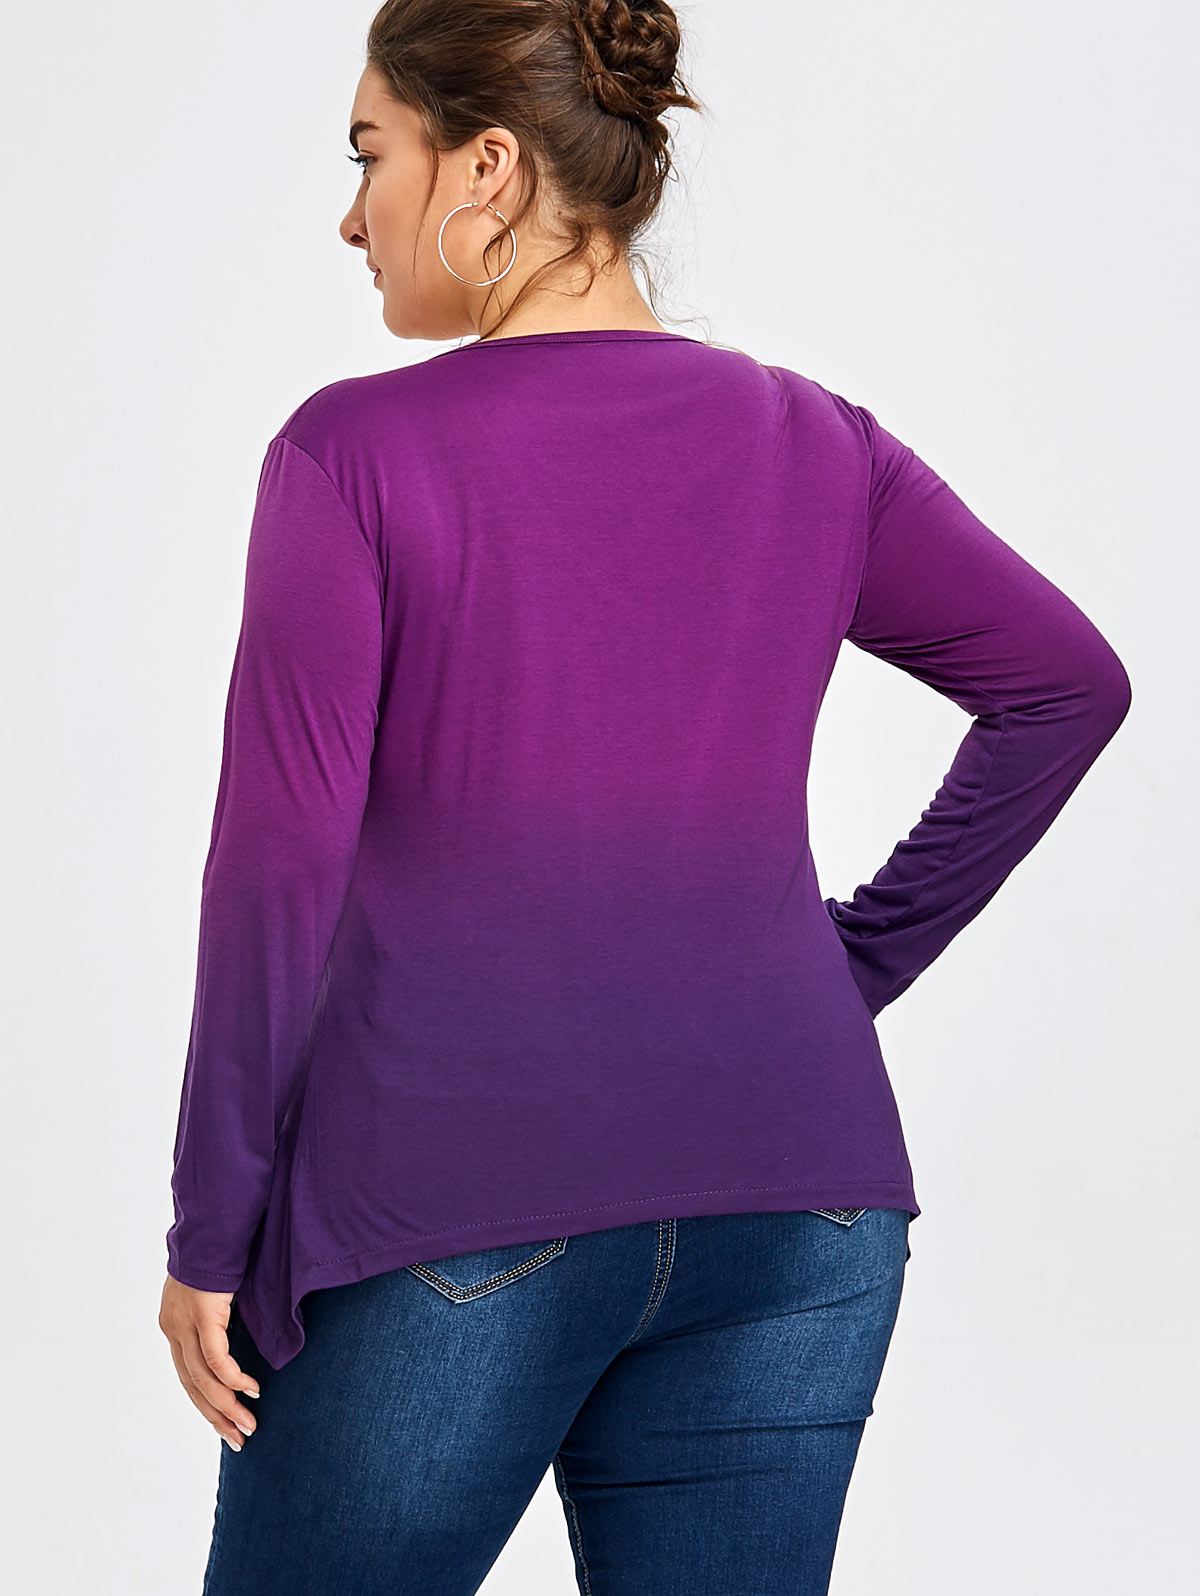 AZULINA Plus Size Caged Cutout Ombre T-Shirt Women Casual V-Neck Criss-Cross Long Sleeves T Shirts Purple Ombre Ladies Tops 5XL